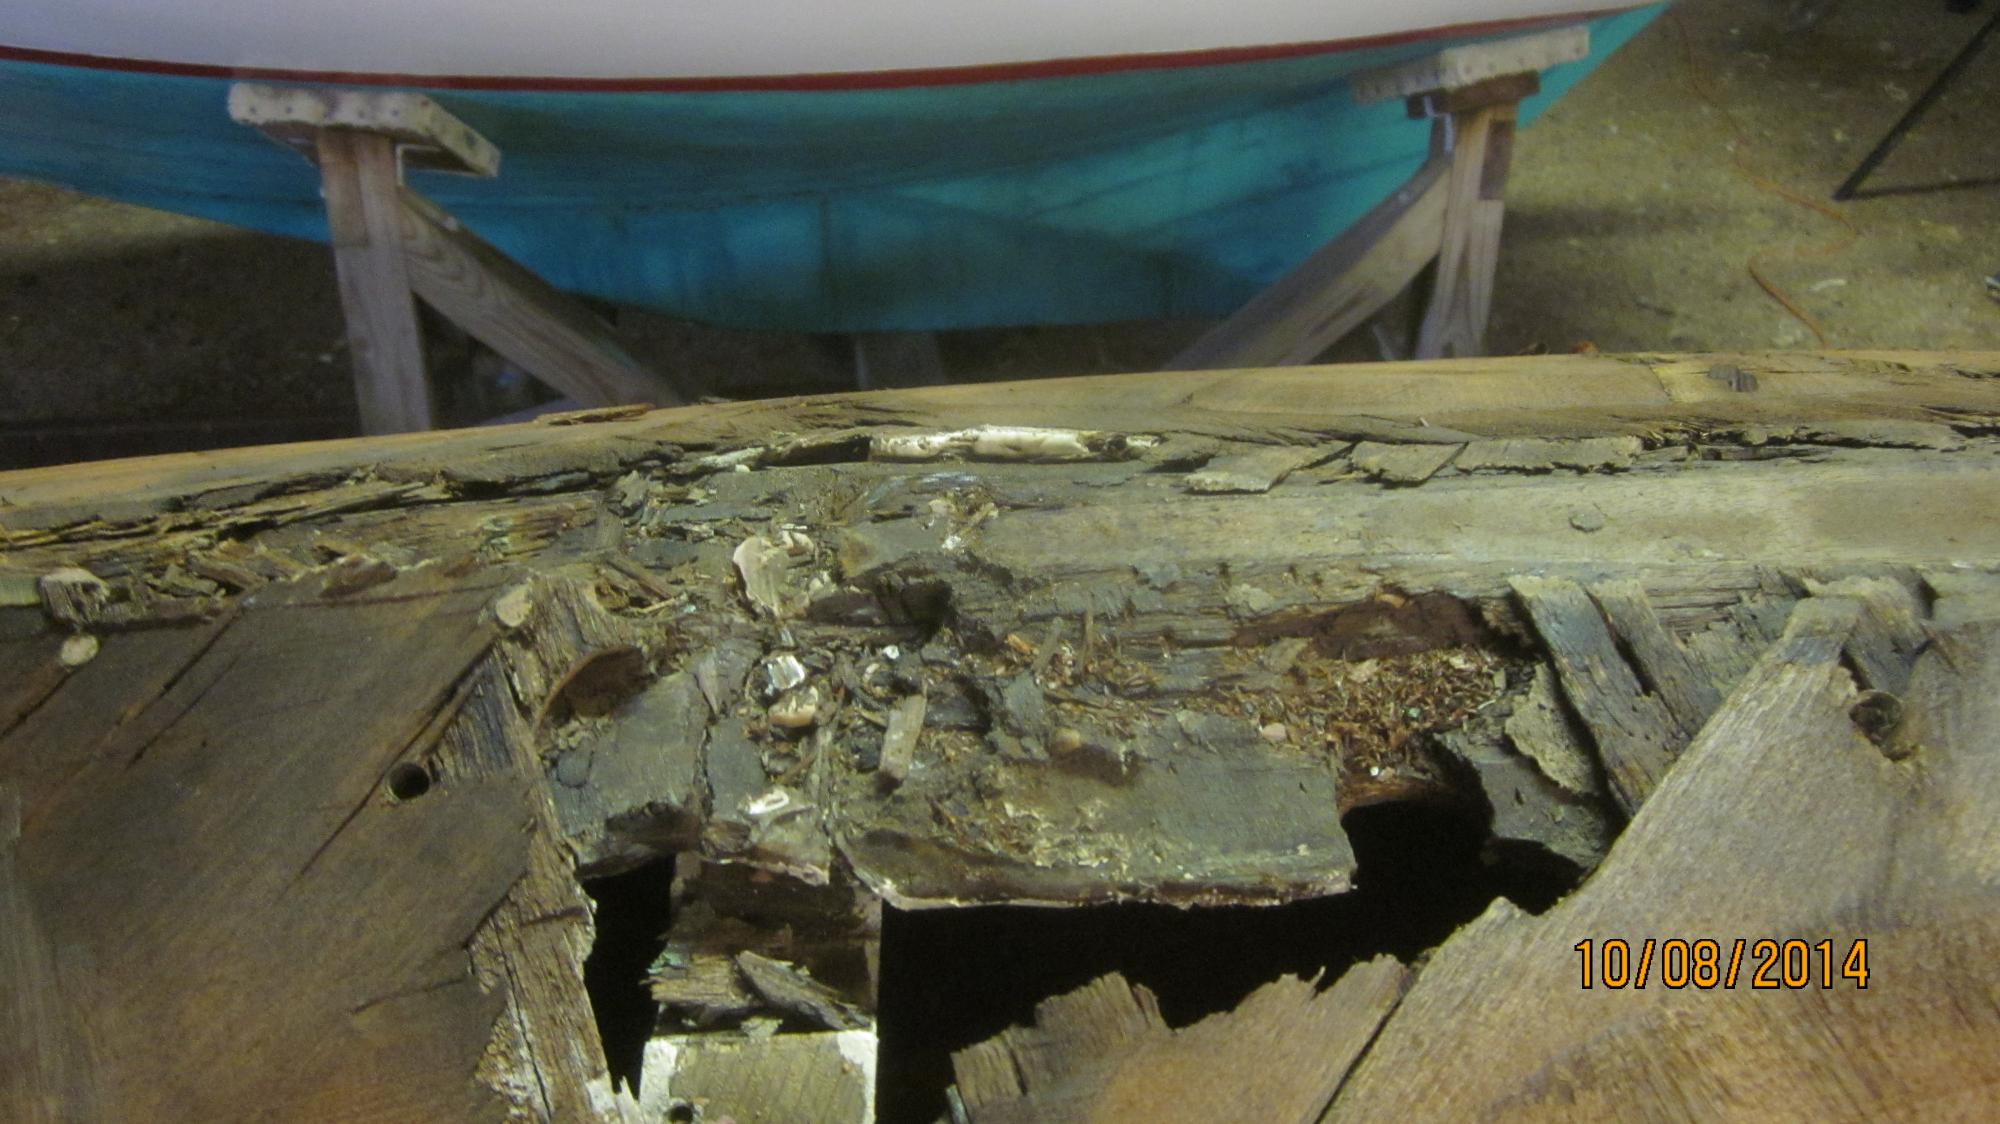 Typical L-16 rot, not so typical broken in half keel batten